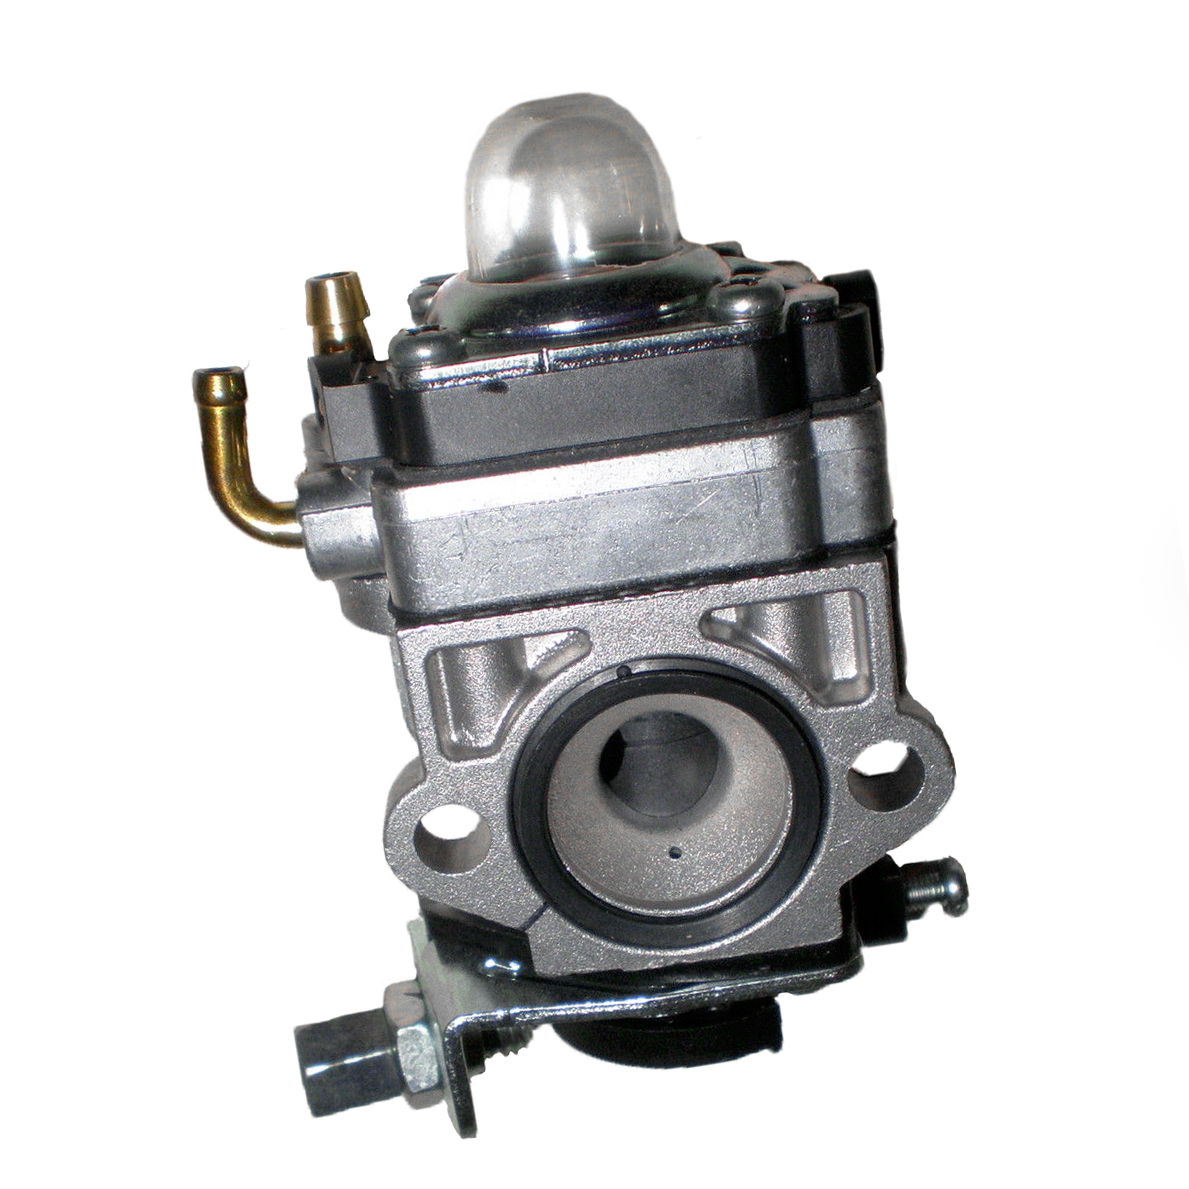 Walbro Carburetor for Shindaiwa SHT230, HT234 Hedge Trimmers WYJ-176-1